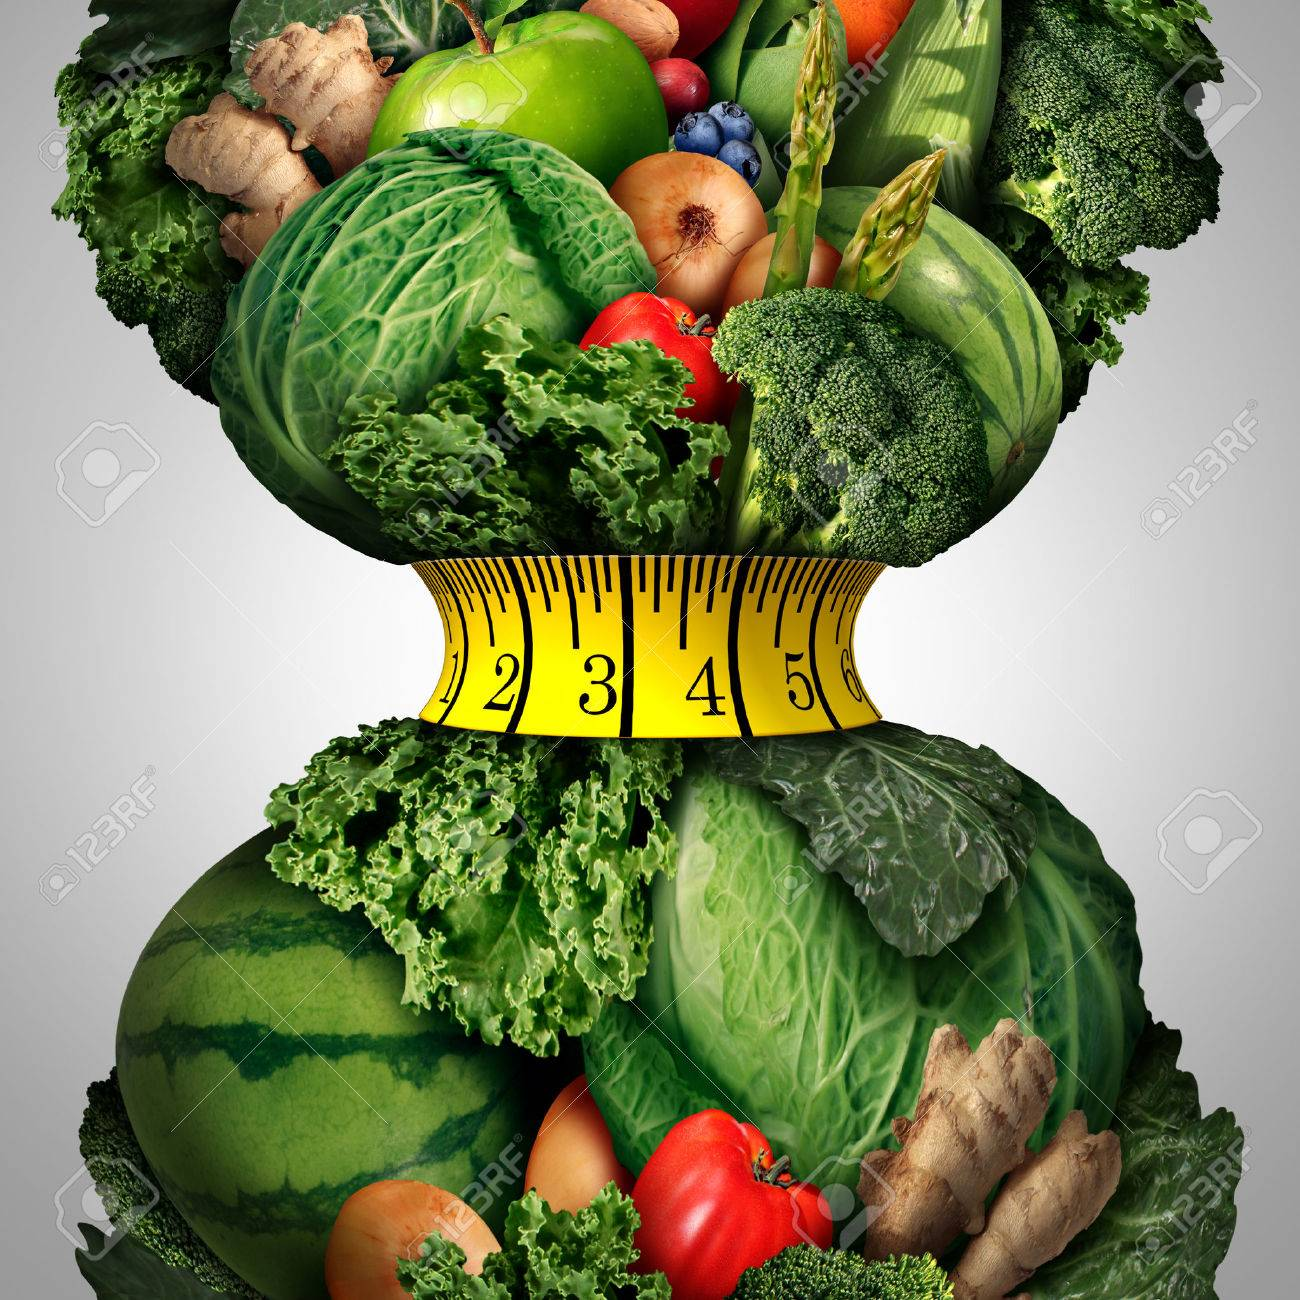 Healthy weight loss diet as a group of fresh fruits and vegetables with a fitness tape measure wrapped around a tight shrinking waistline shape as a metaphor for healthy lifestyle weightloss. - 48270148